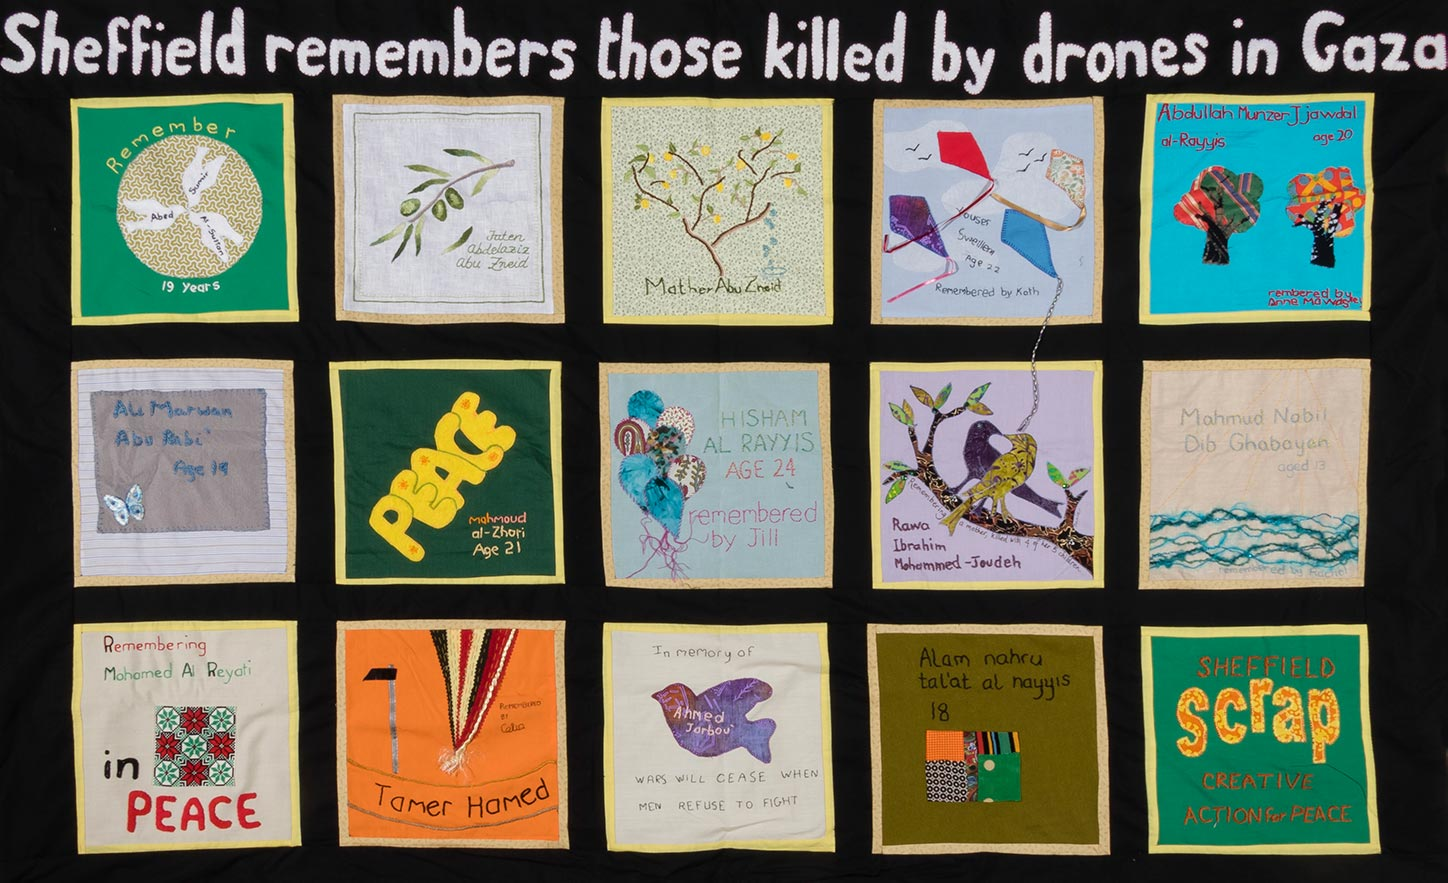 A banner made by people in Sheffield to protest the bombing of Syria.